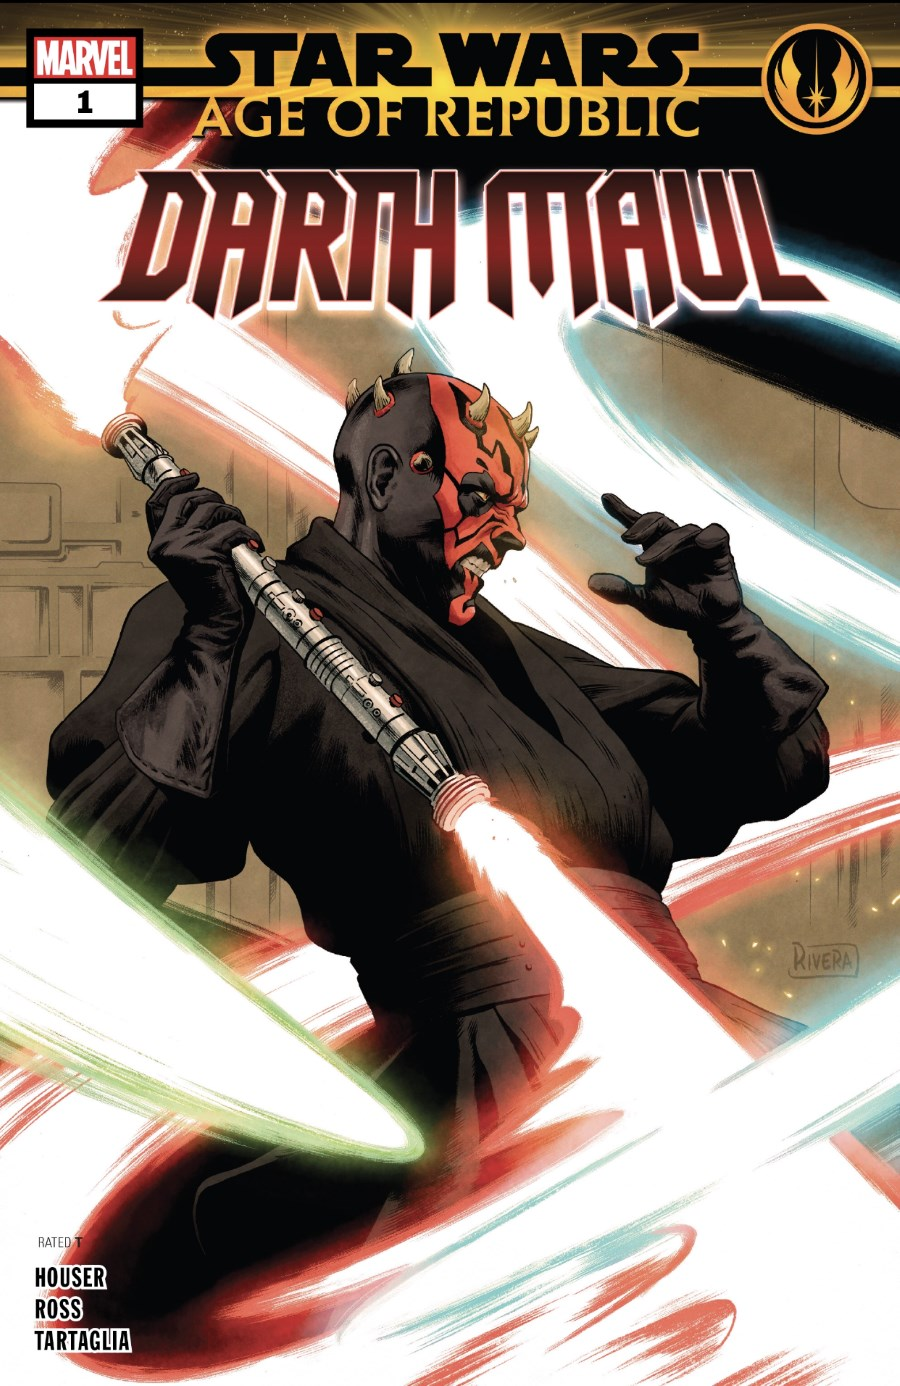 Star Wars; Age of Republic - Darth Maul #1 - Cover